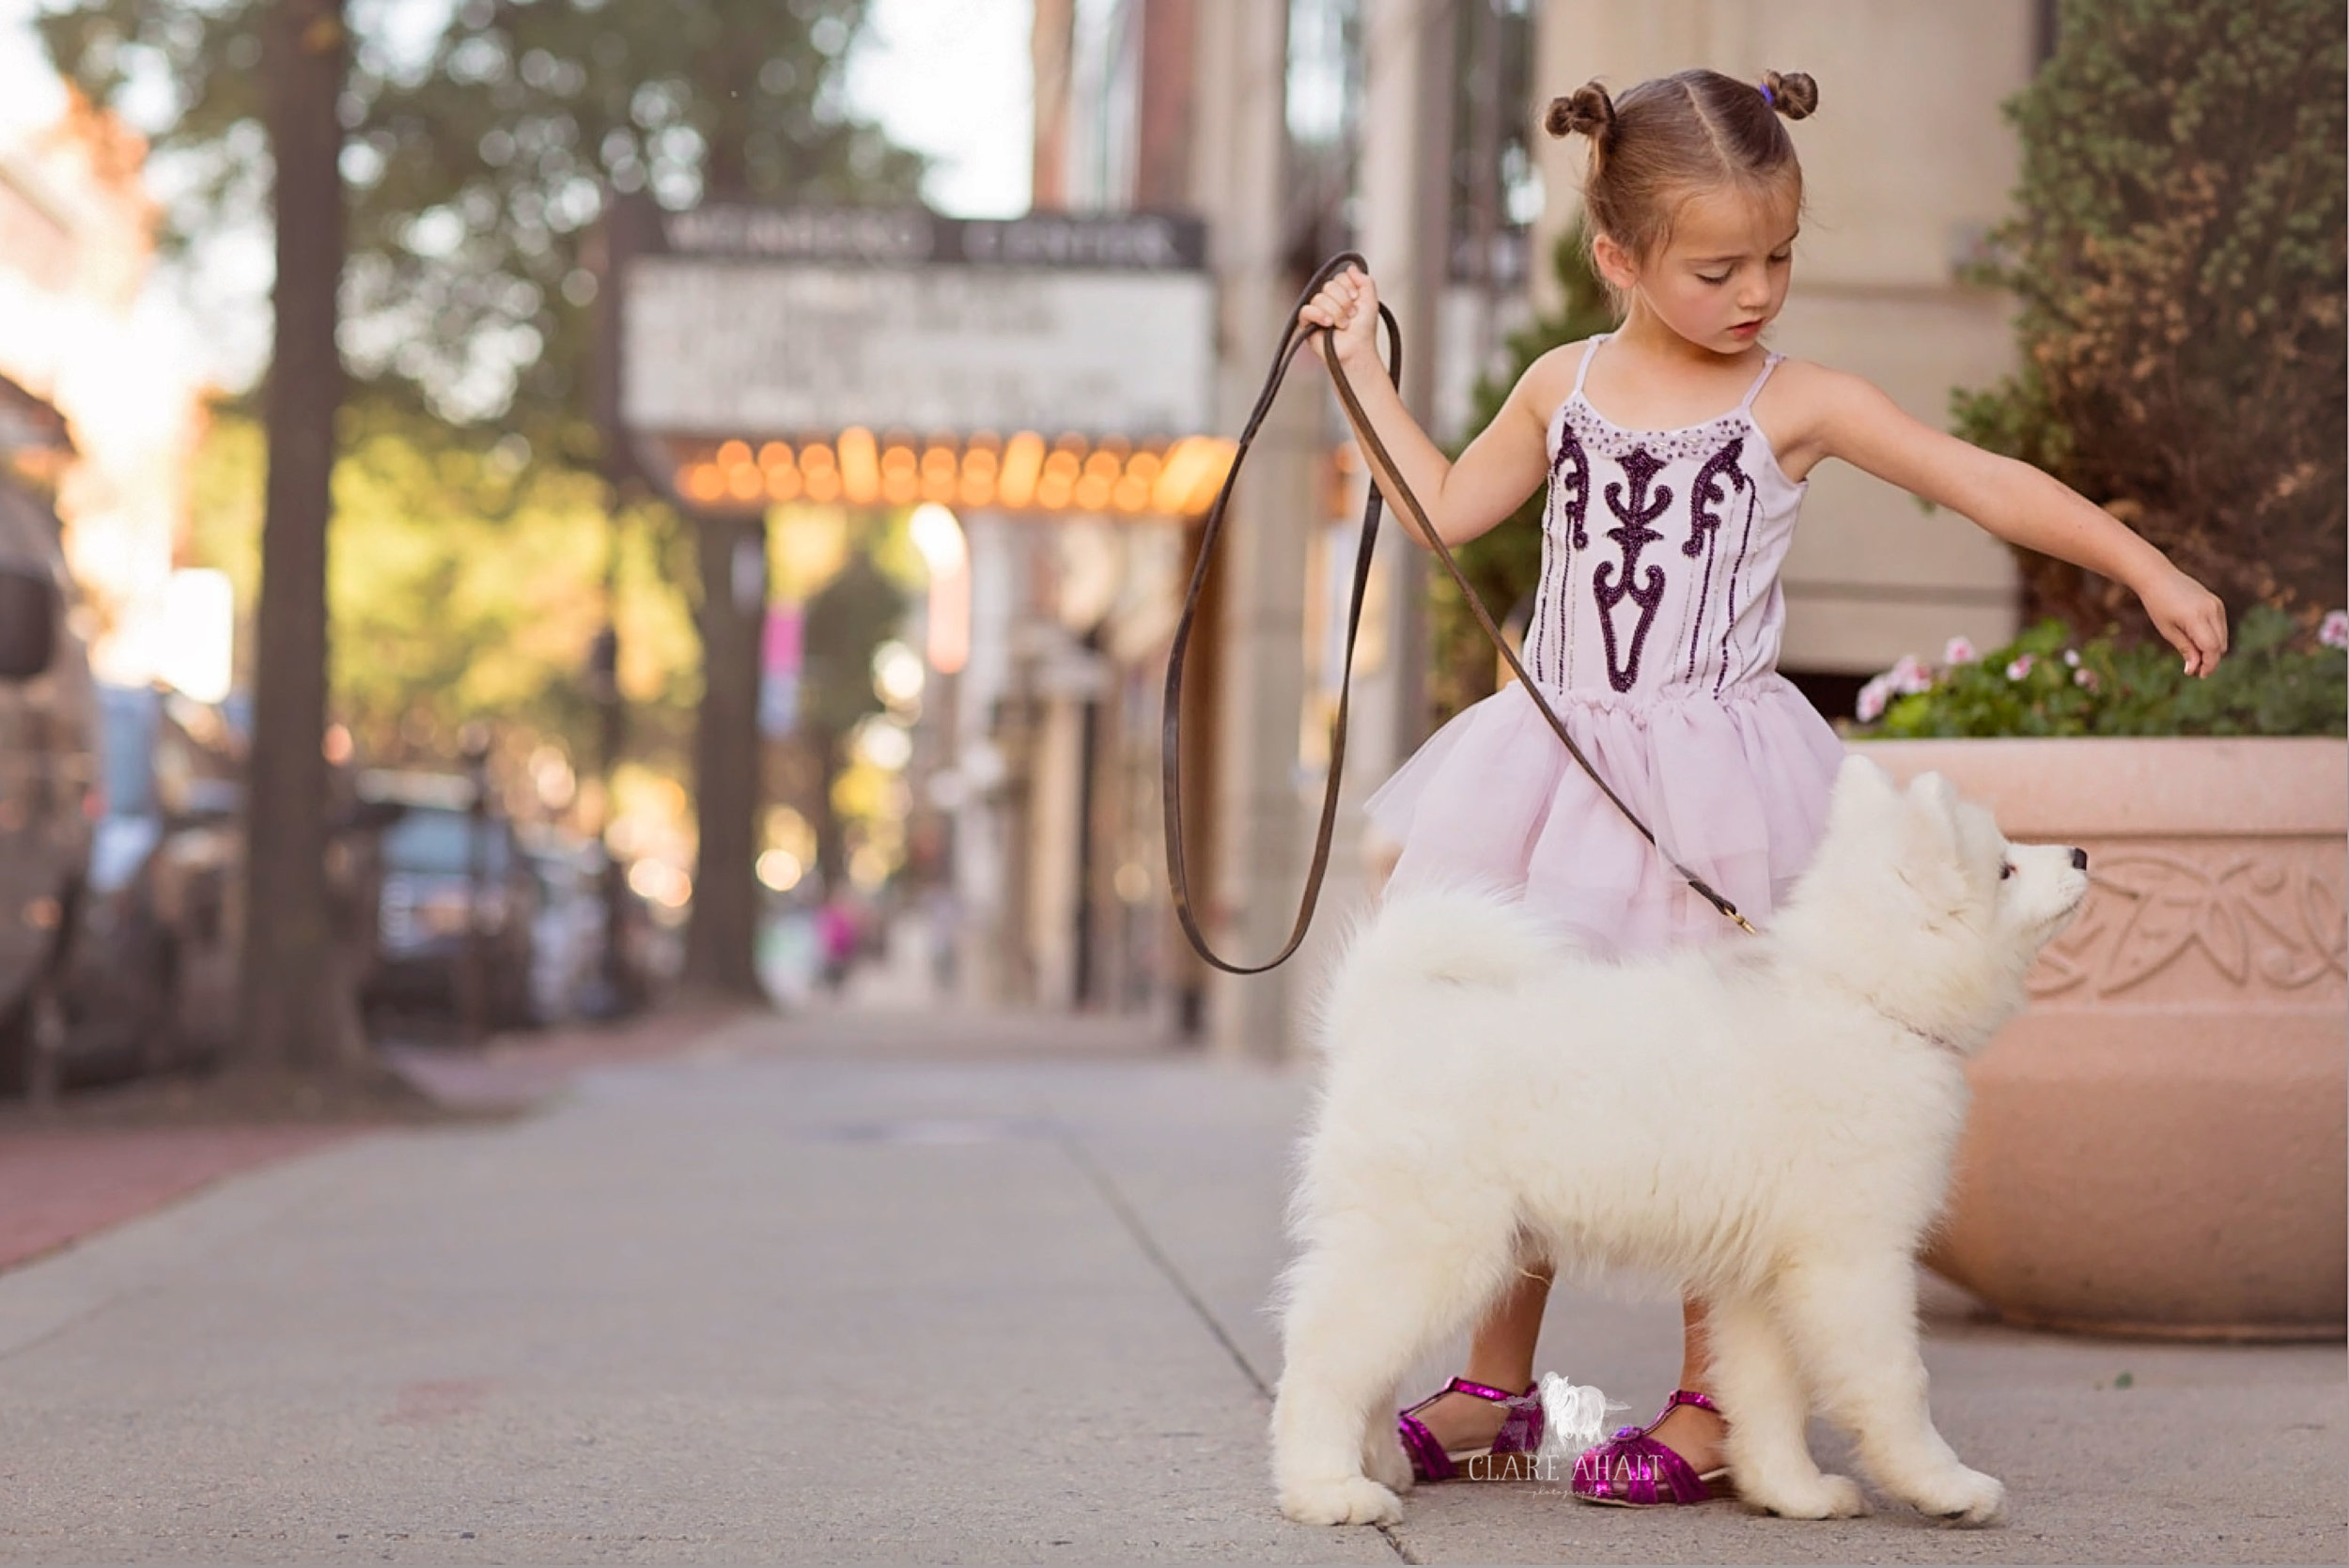 Jefferson Veterinary Hospital owner and veterinarian Dr. Ahalt's daughter and puppy in downtown Frederick MD, near the Weinberg Center